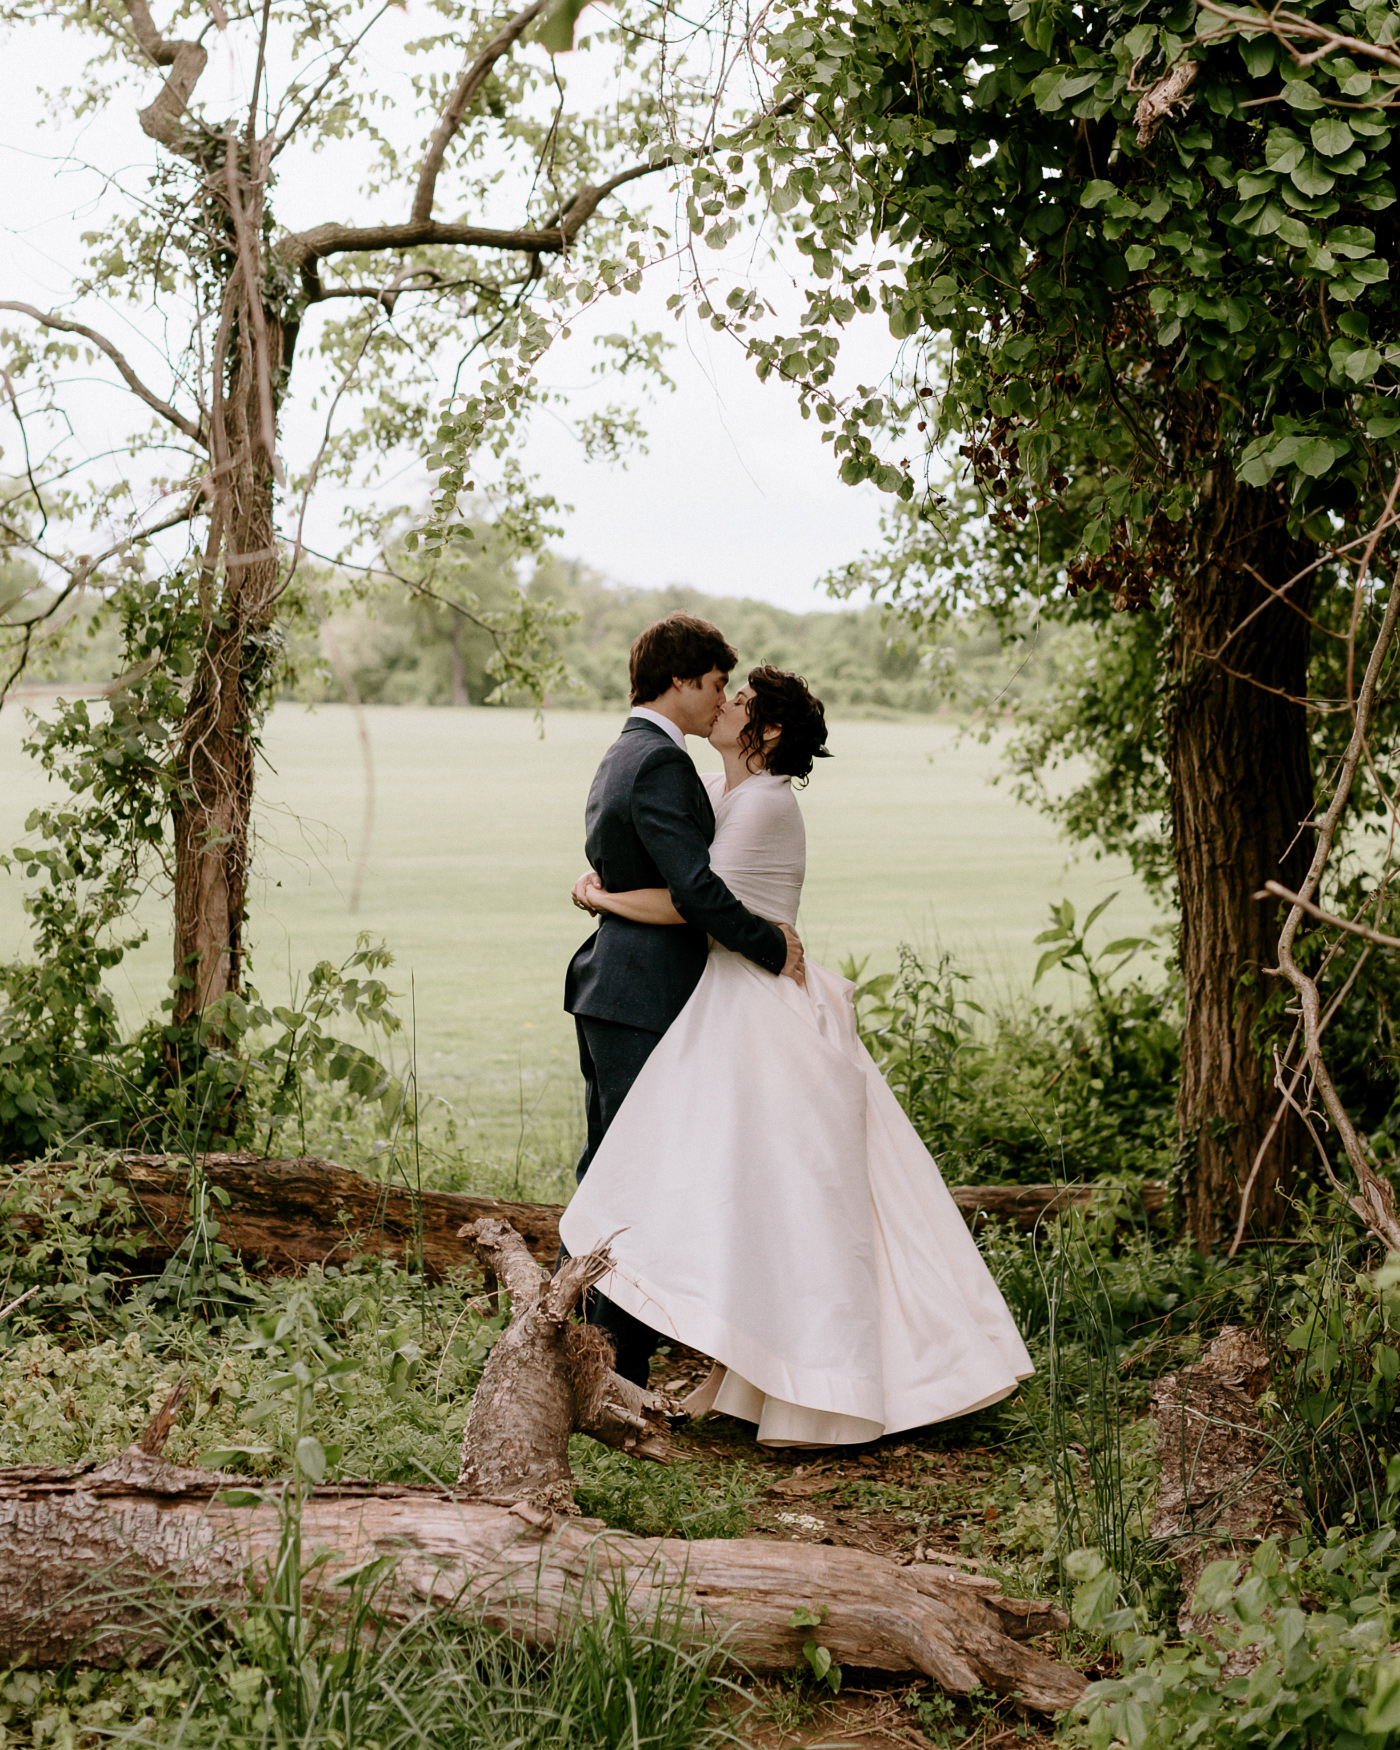 Bride and groom in forest kissing